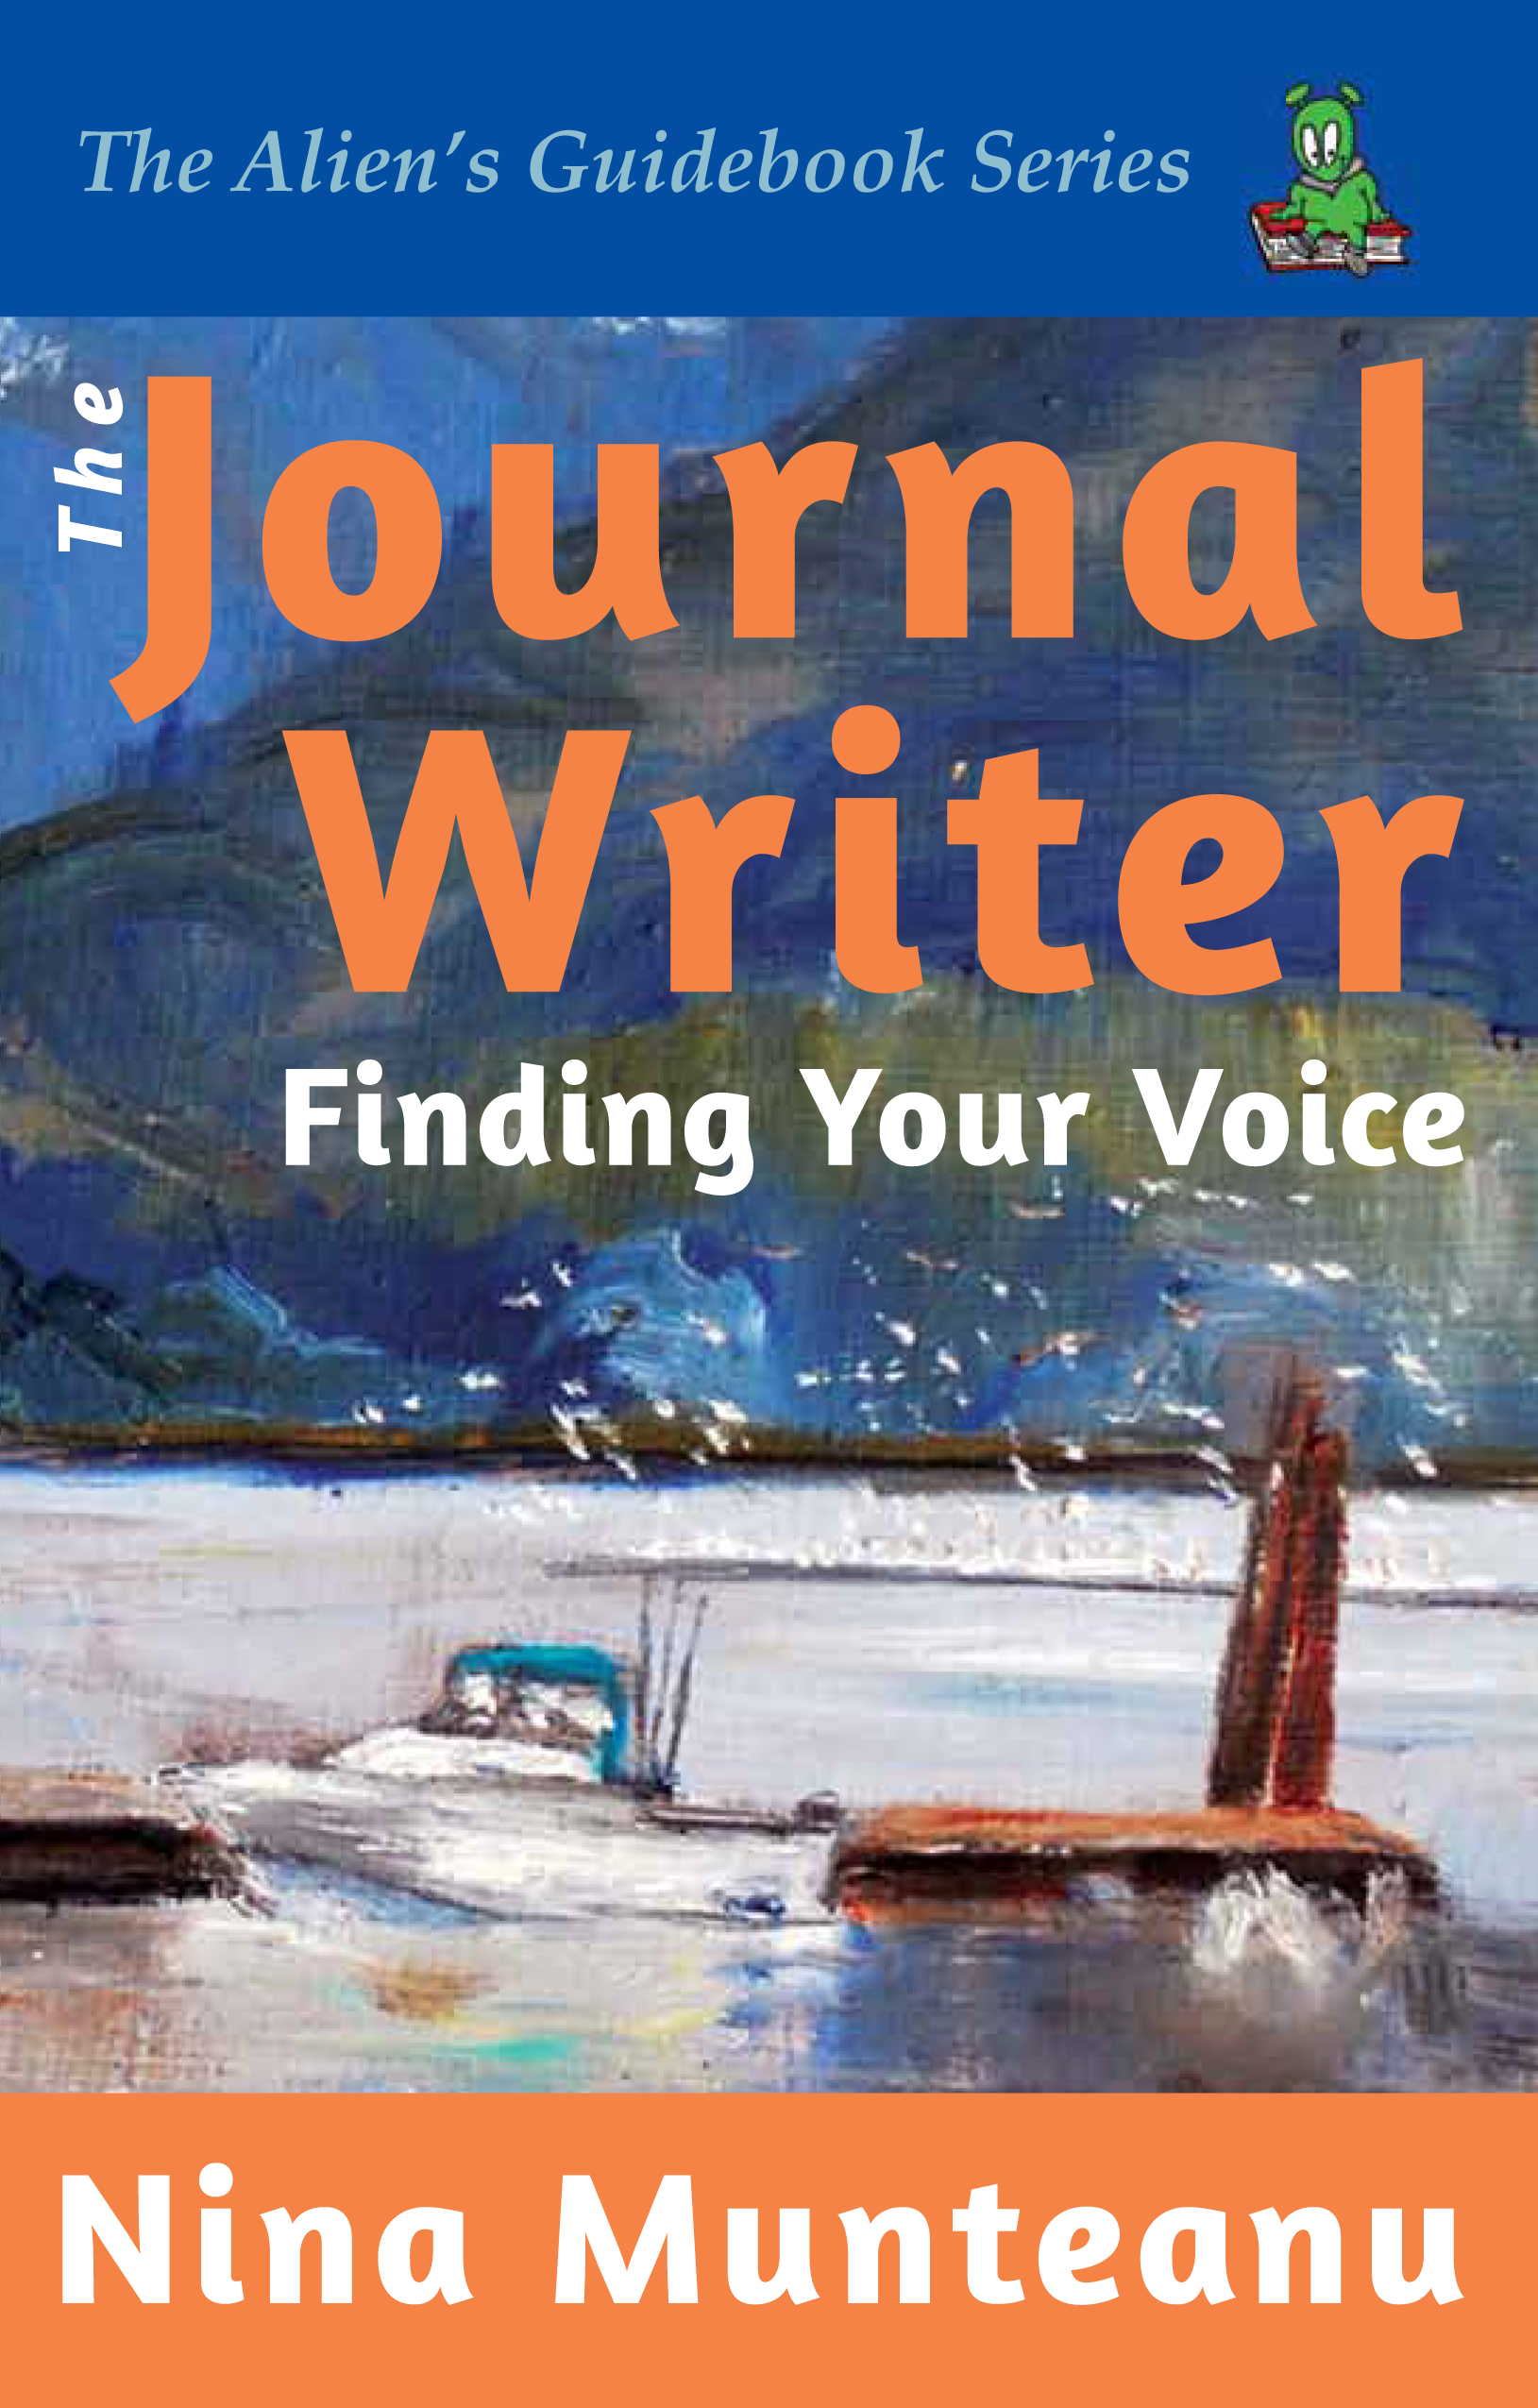 The Journal Writer: Finding Your Voice